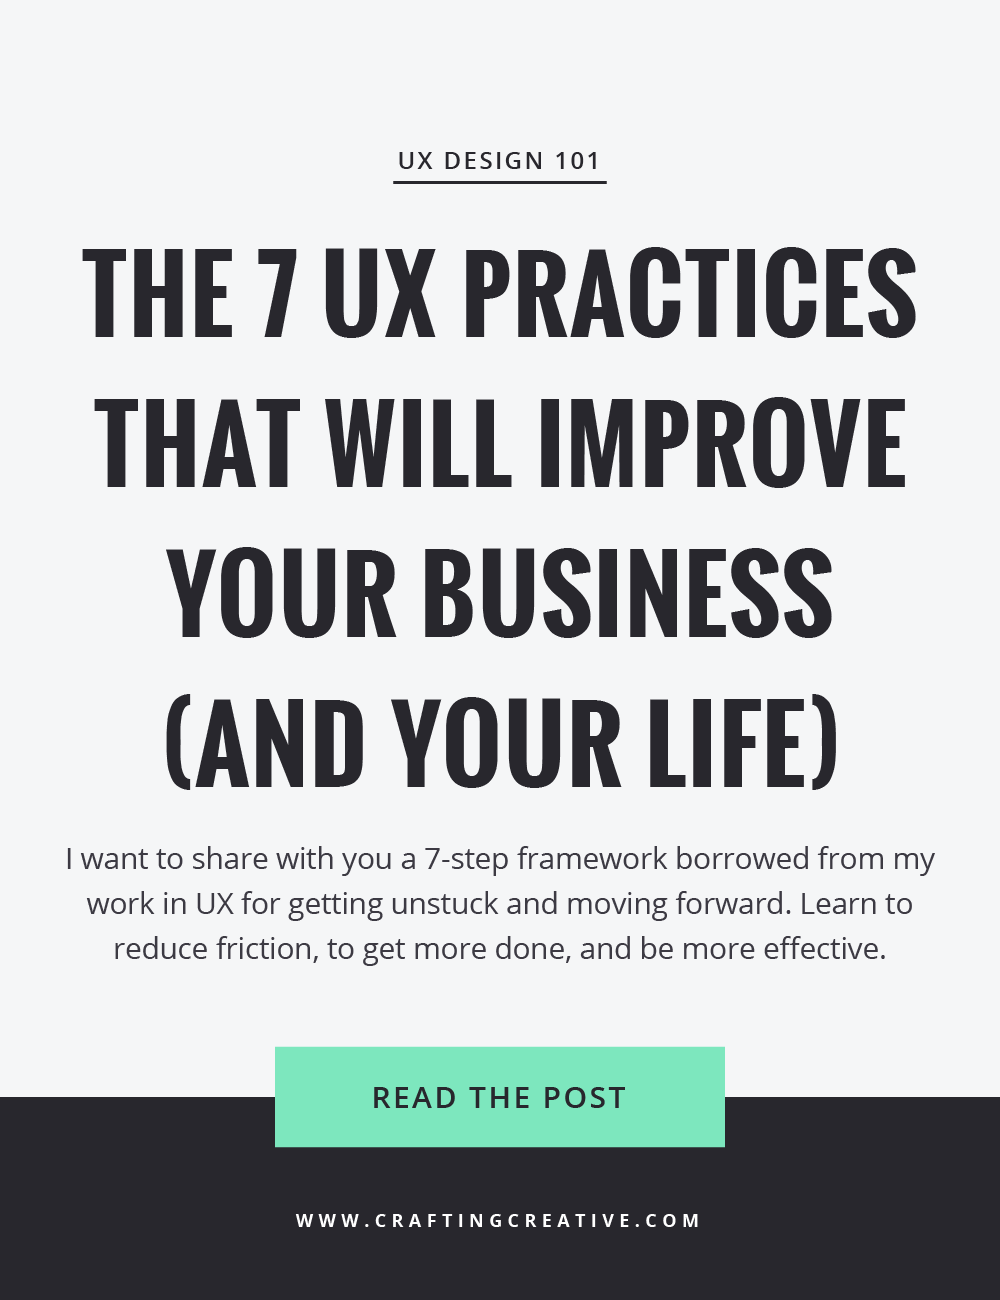 In this post, I share with you a 7-step framework, borrowed from my work in User Experience Design, for getting unstuck and making progress toward your goals. Learn to reduce friction, to get more done, and to be more effective. Click through to get the 7 steps!